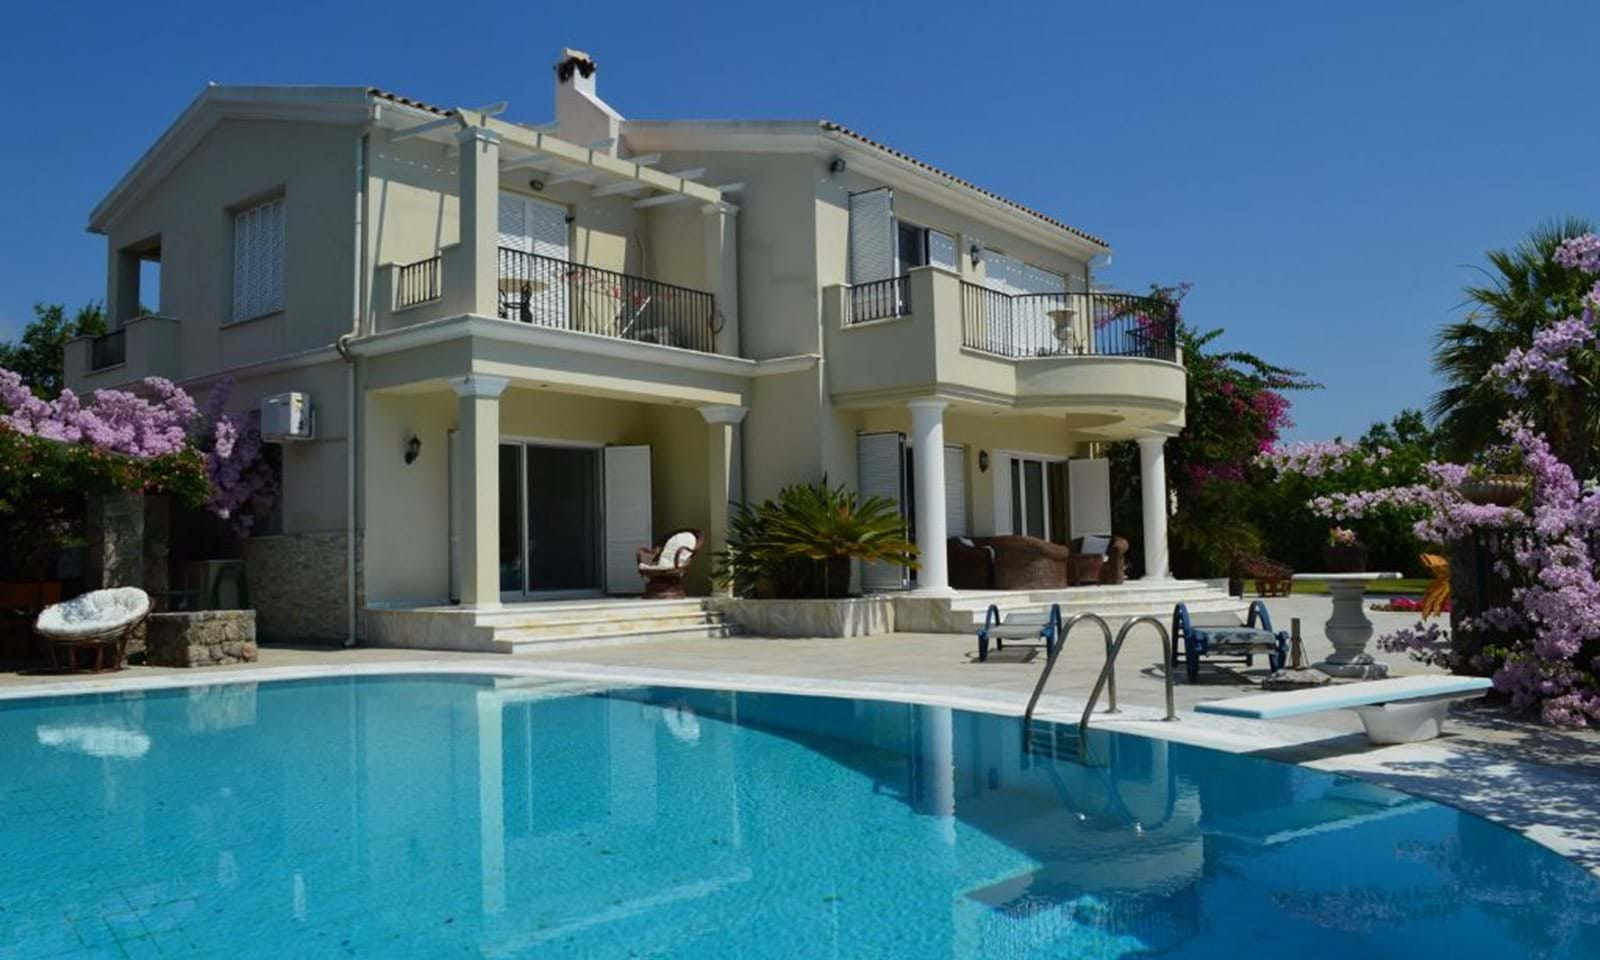 property for sale in corfu, luxury property in corf